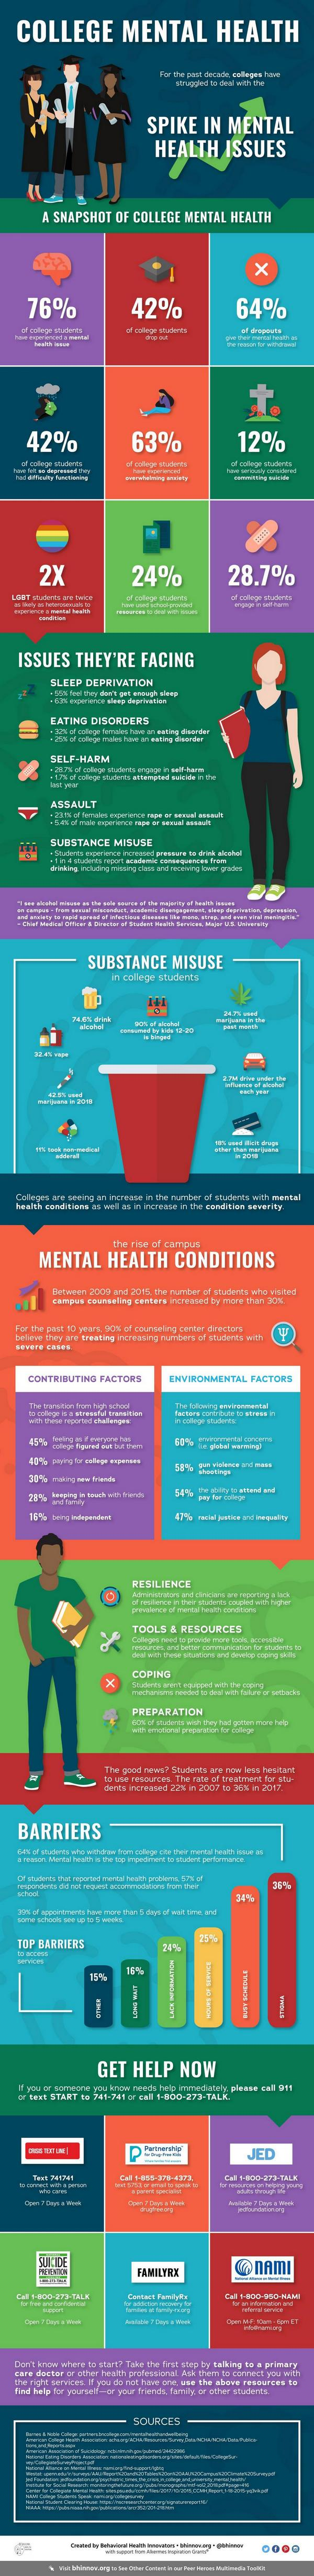 College-Mental-Health-Infographic-600